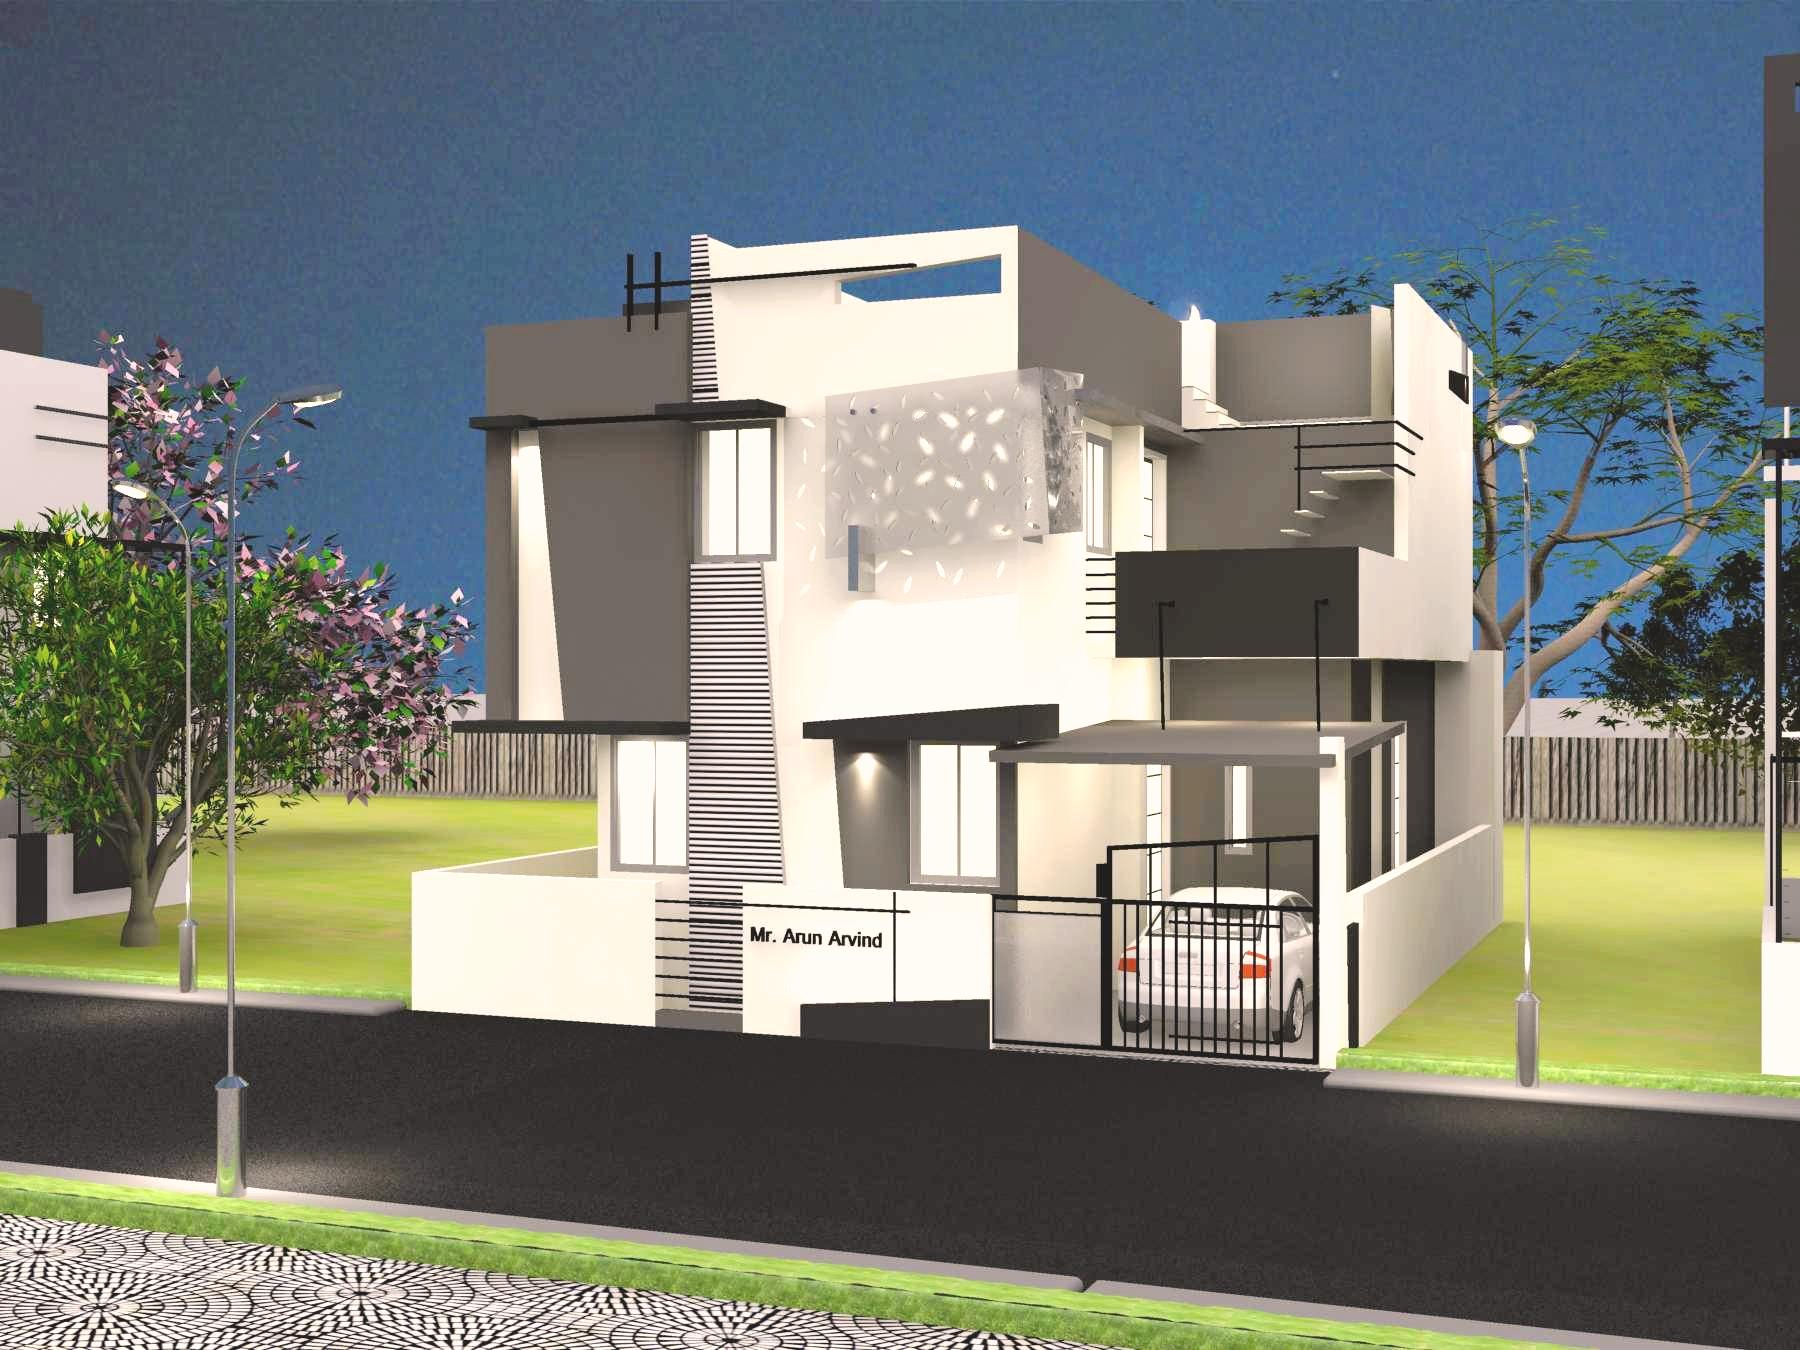 Contemporary architecture house designs commercial for Architectural commercial design